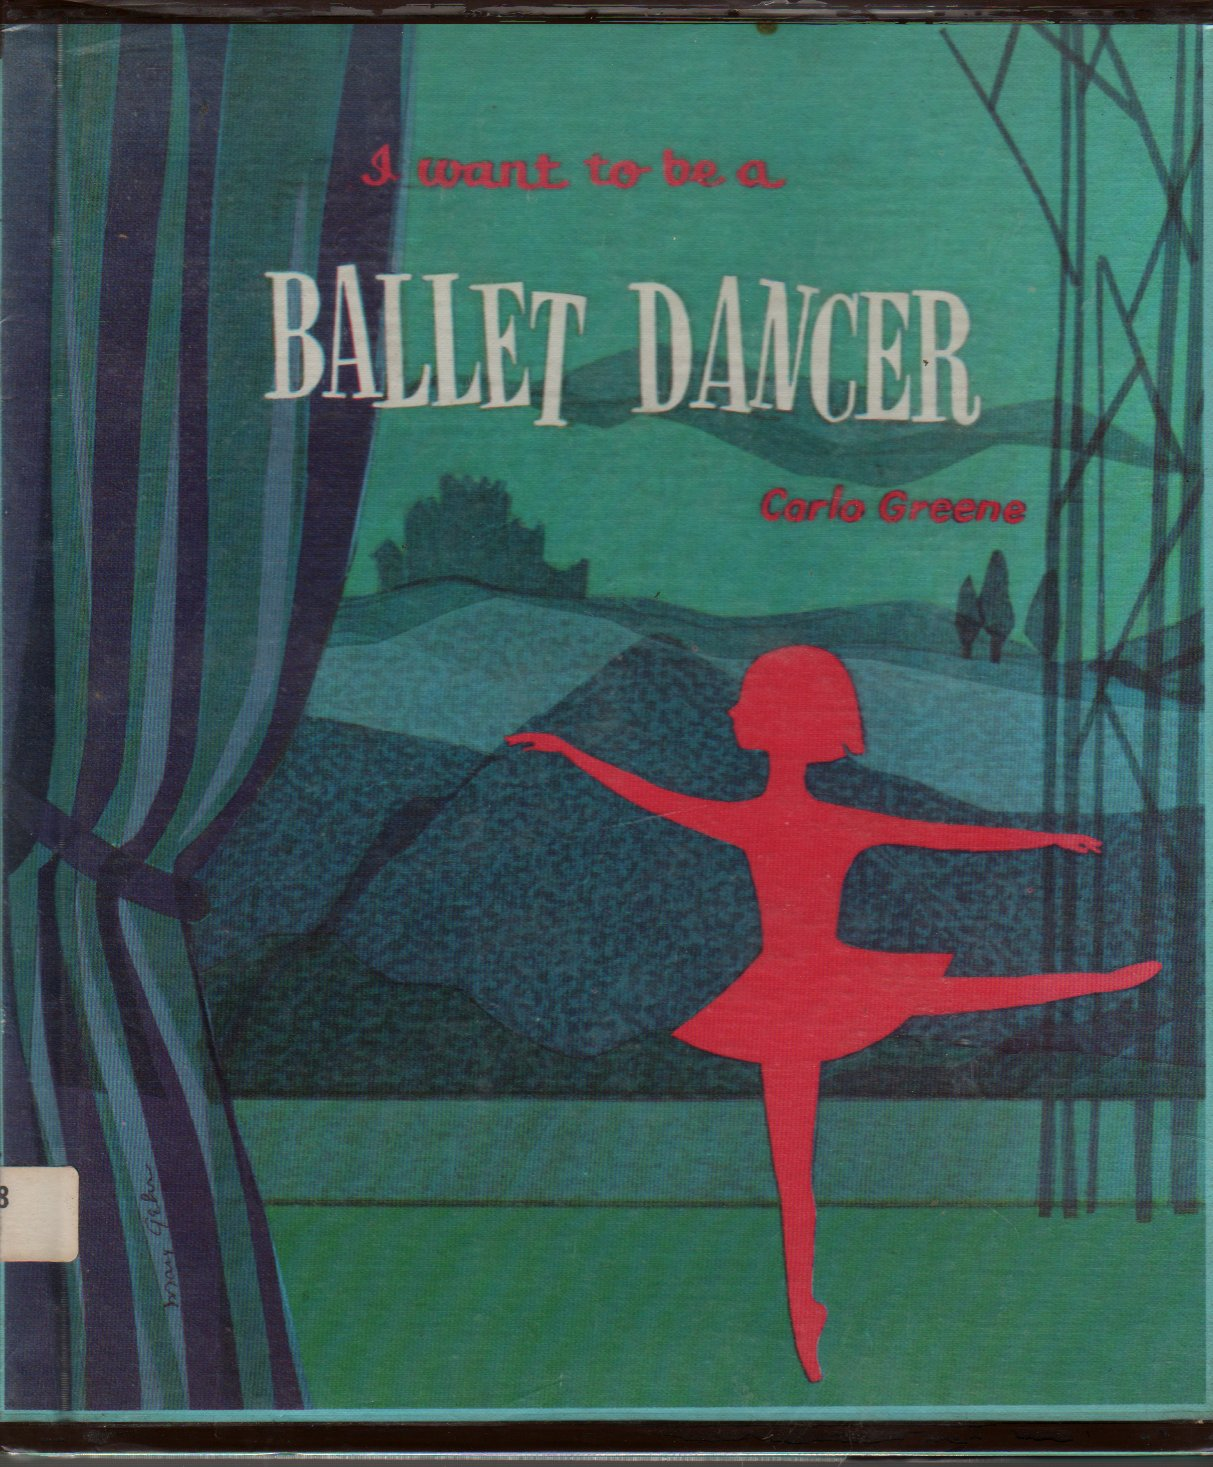 I Want To Be a Ballet Dancer - Carla Greene - Mary Gehr - 1959 - Vintage Kids Book